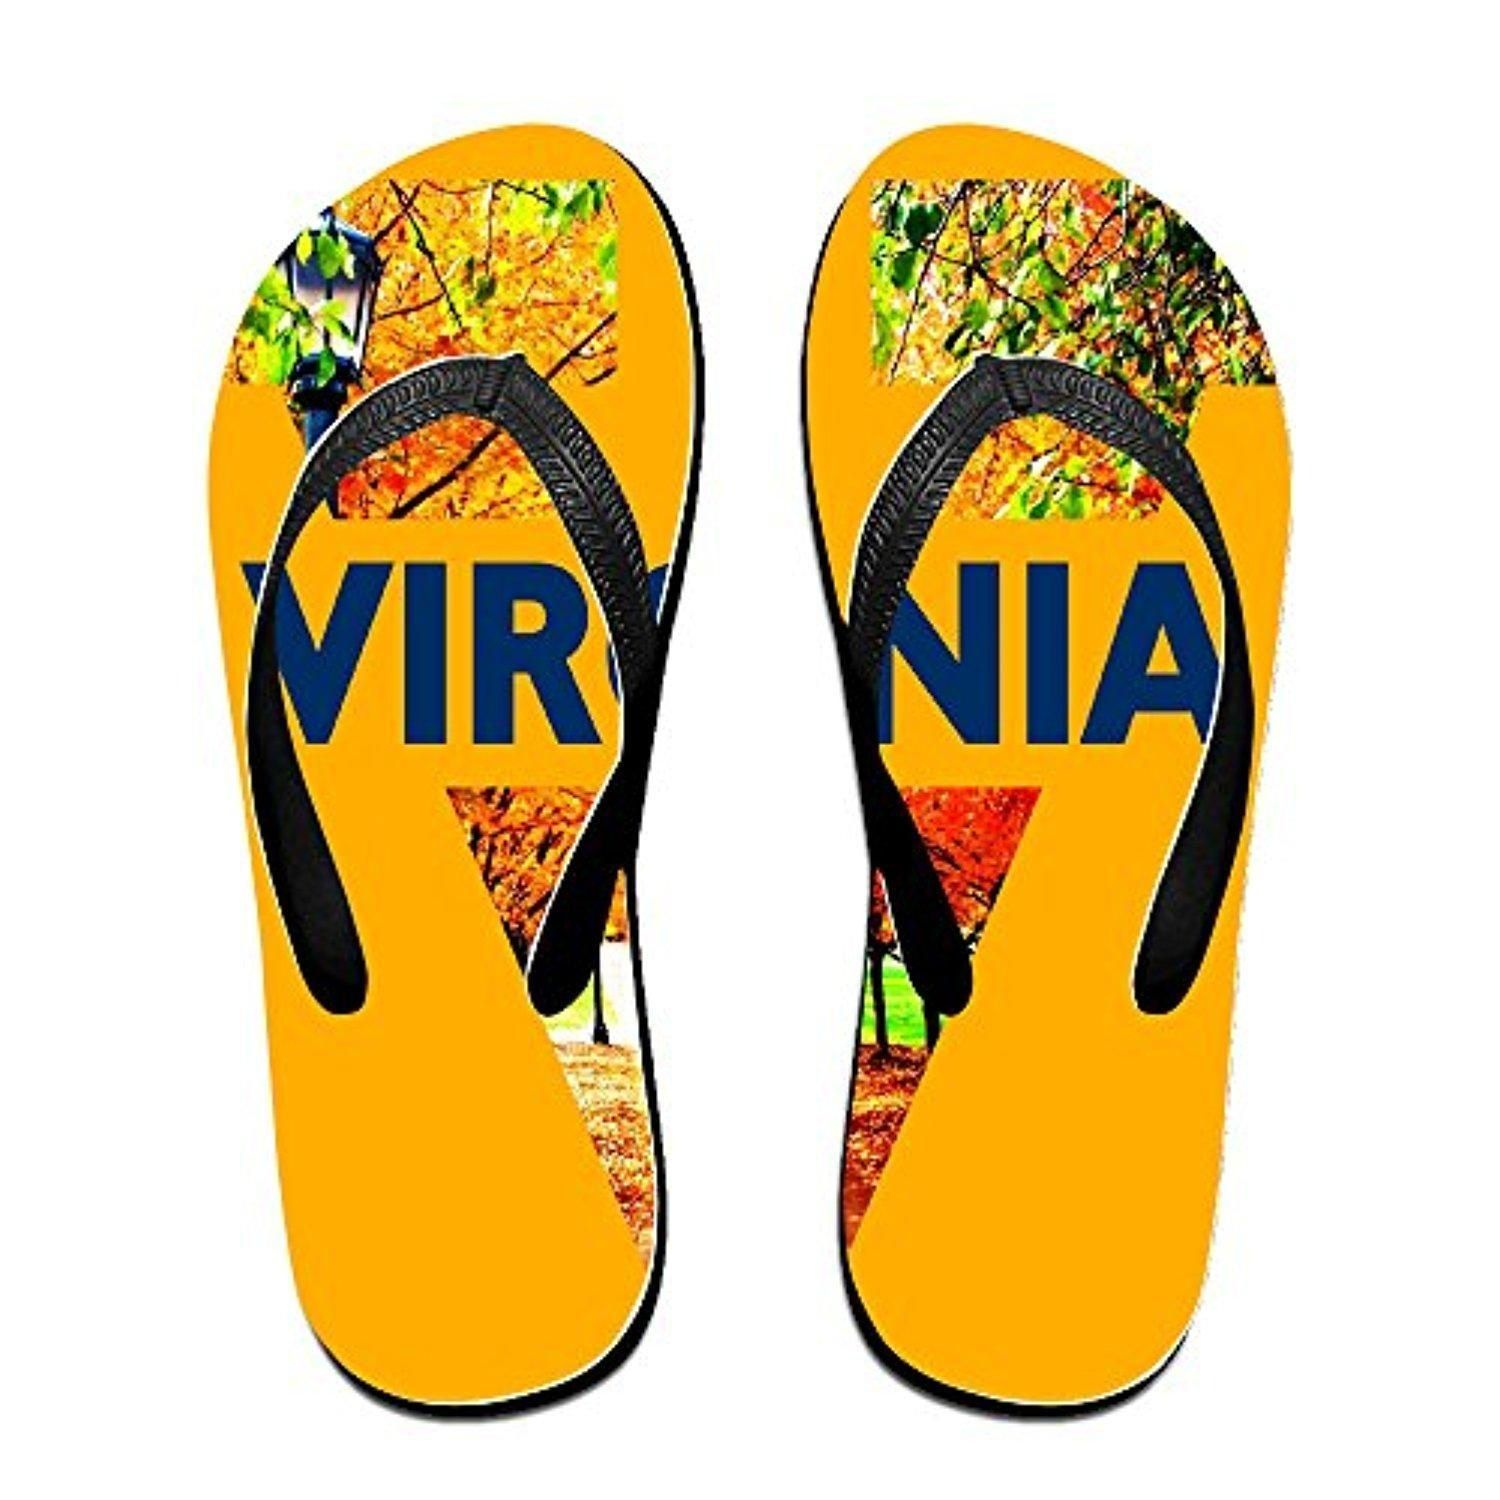 Shehe V Virginia Unisex Summer Beach Flip-flops Sandals L - Brought to you by Avarsha.com